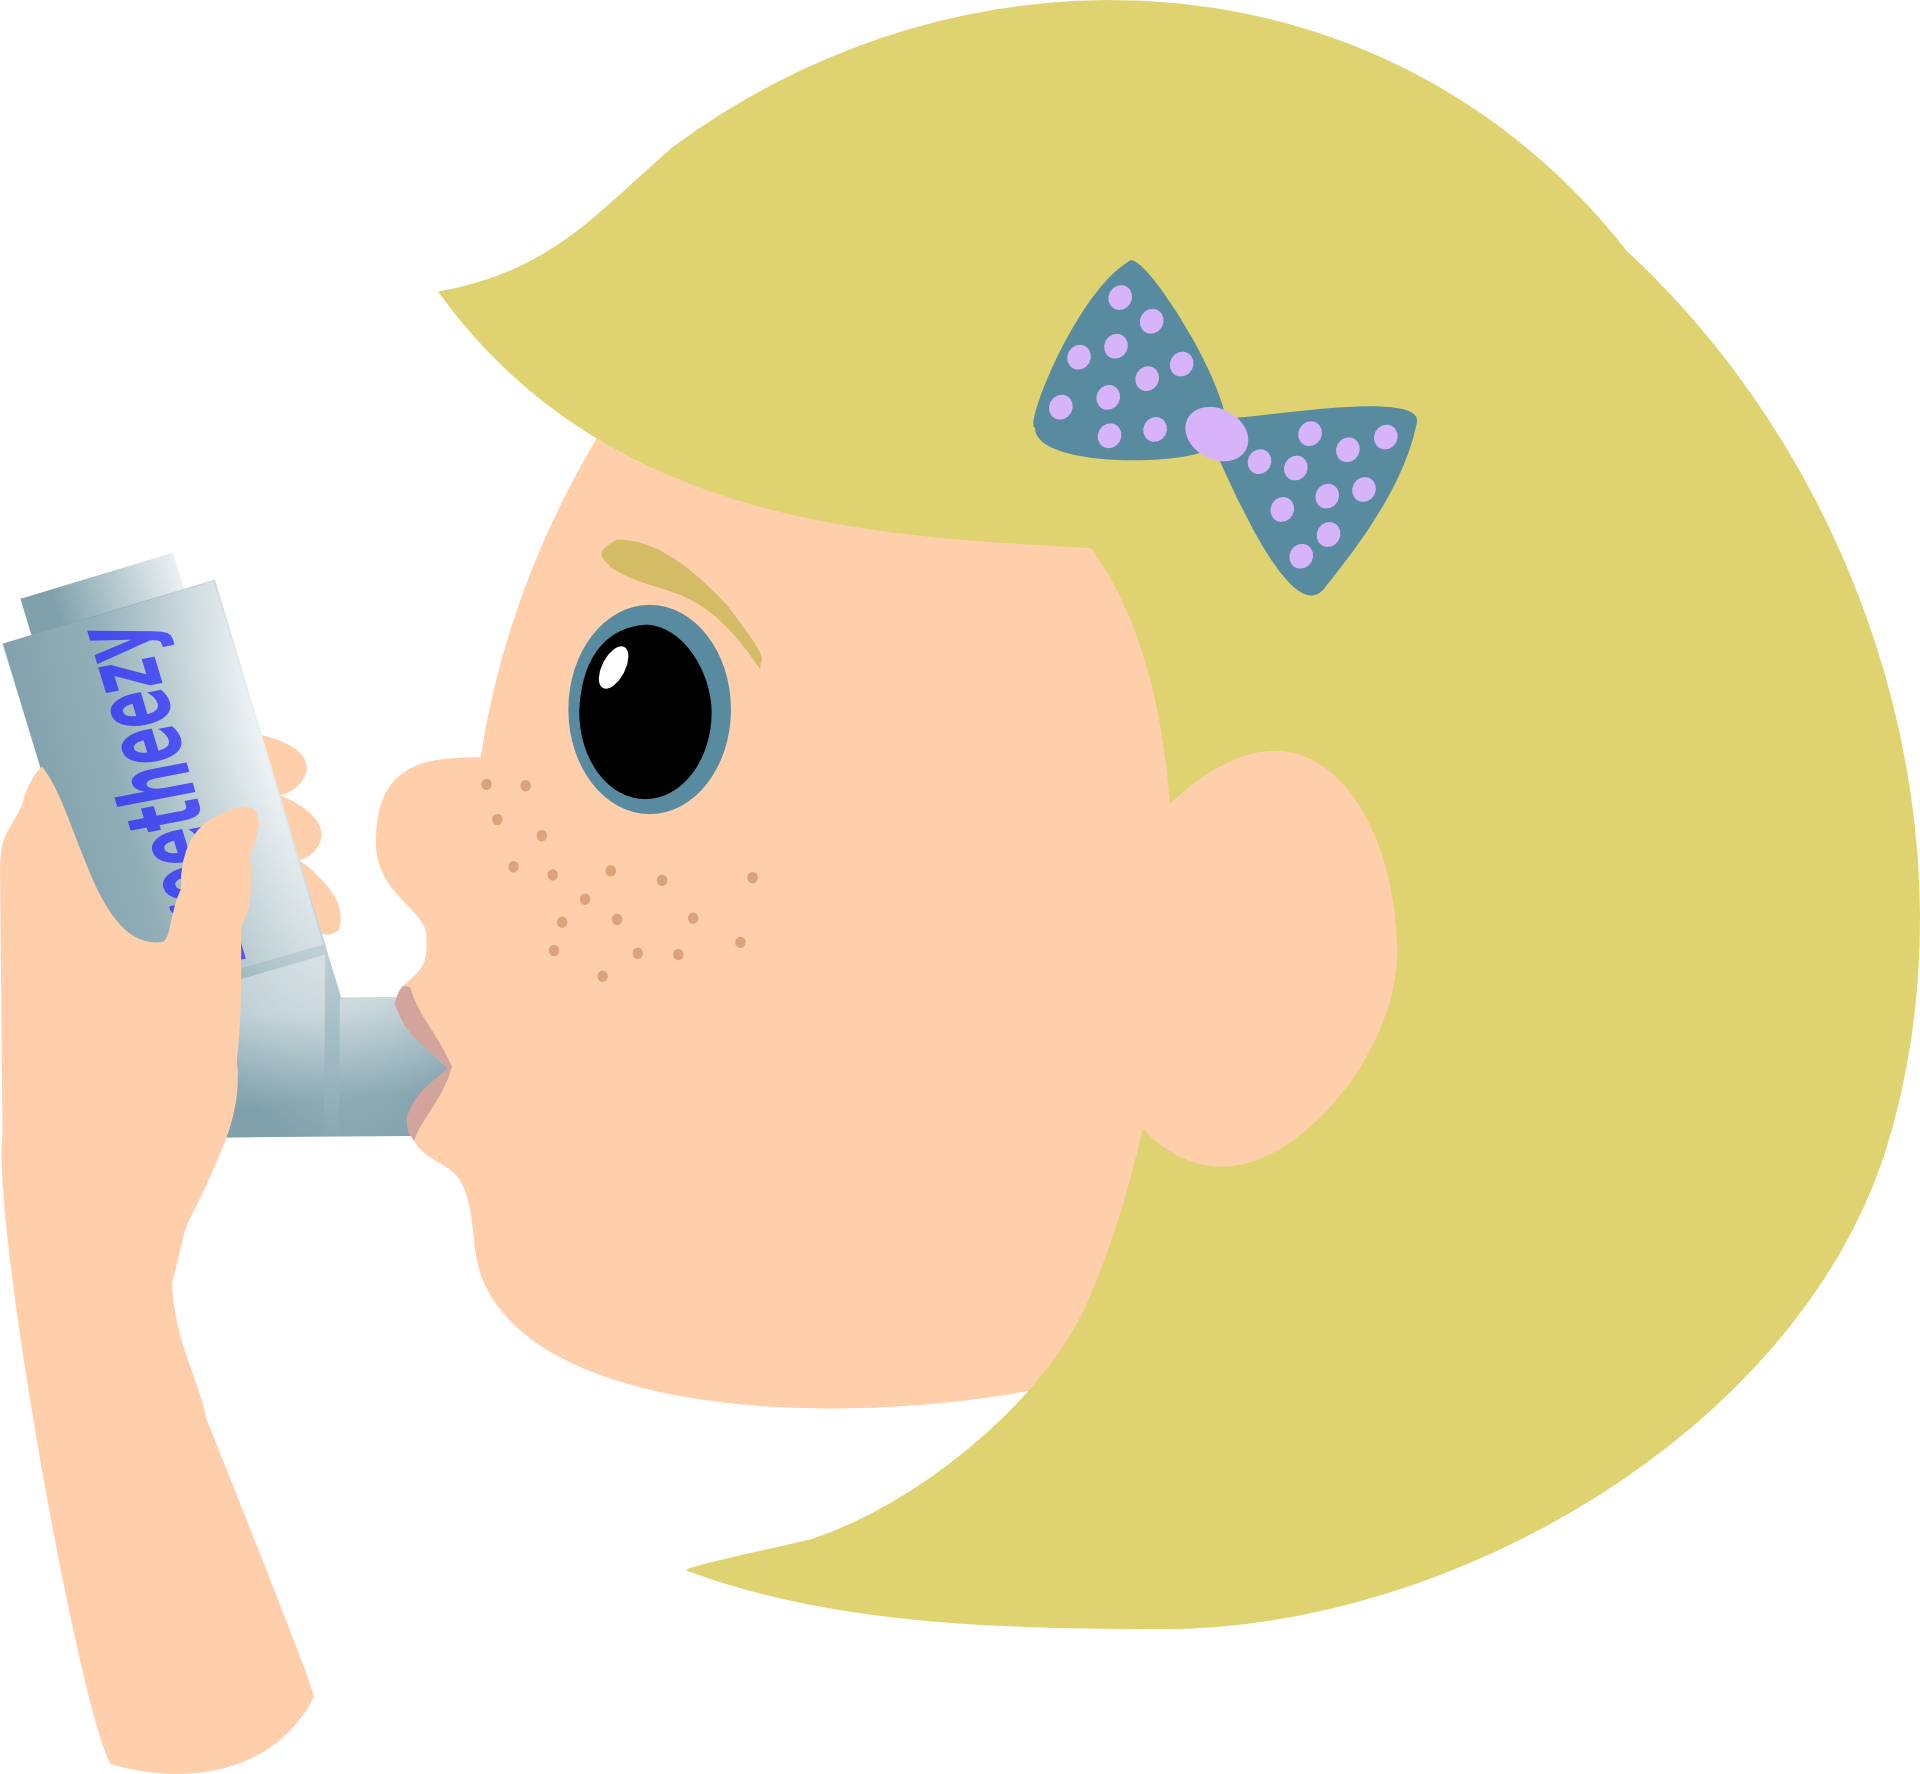 png black and white stock Asthma awareness day the. Waking clipart sleepless.